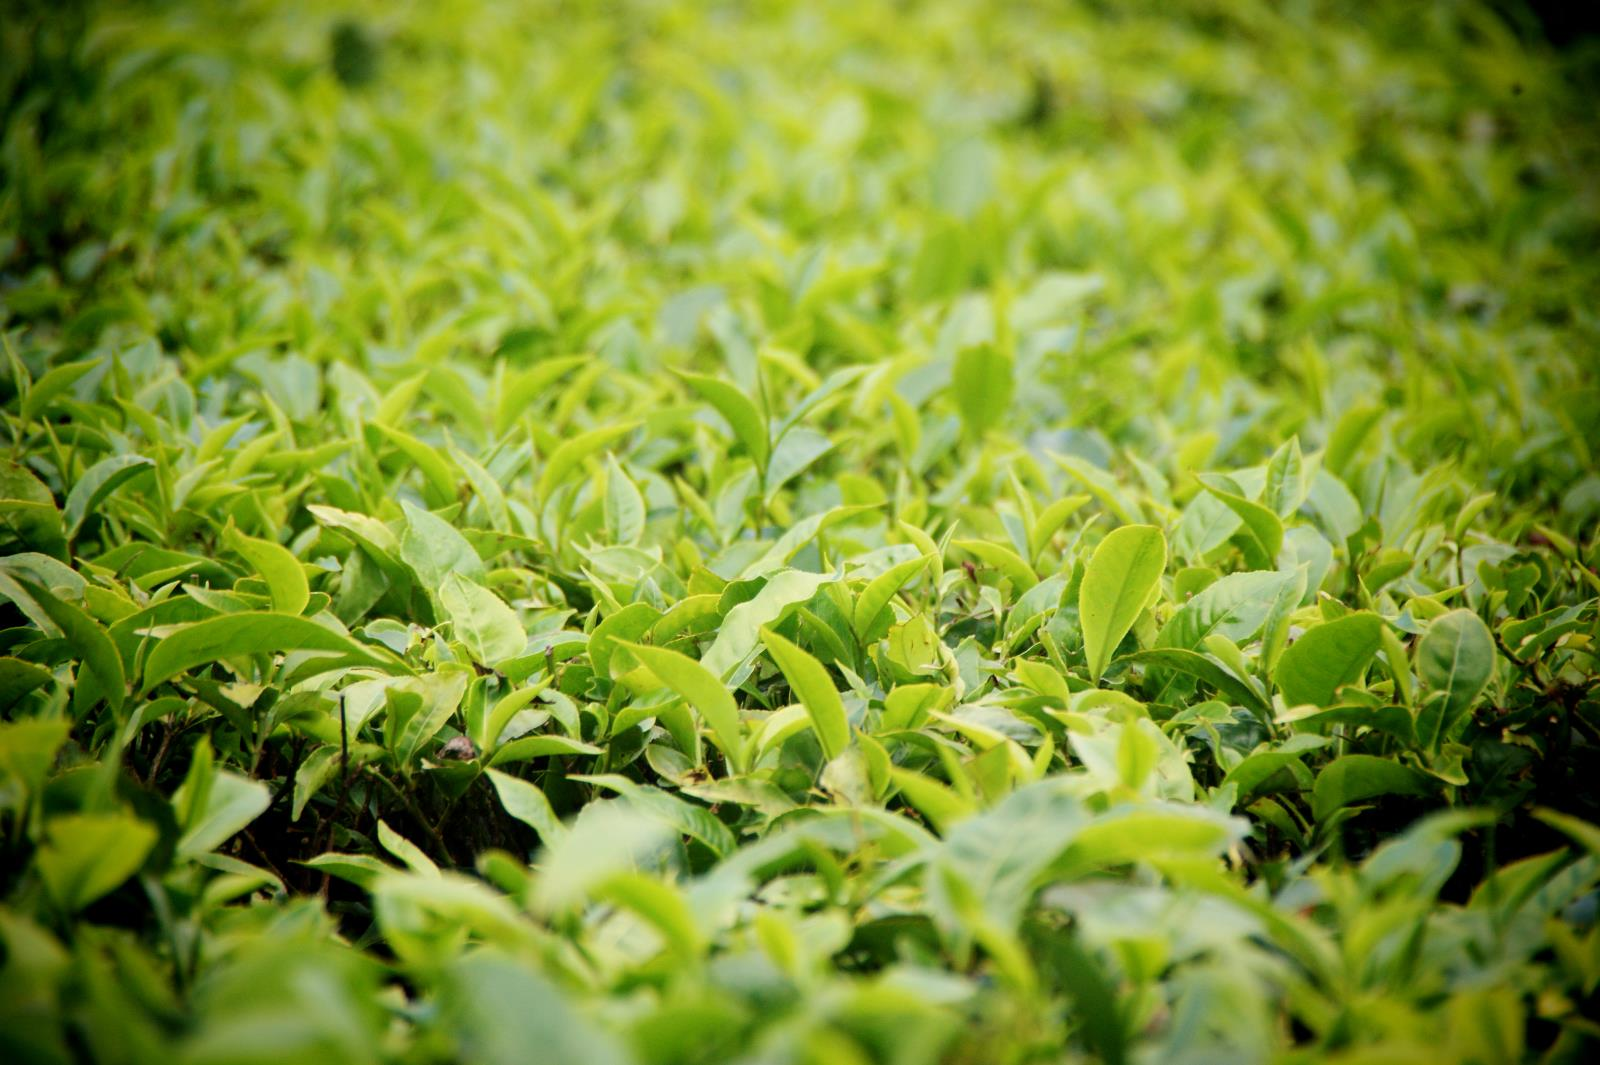 Tee leaves at Satemwa Tea Estate in Malawi